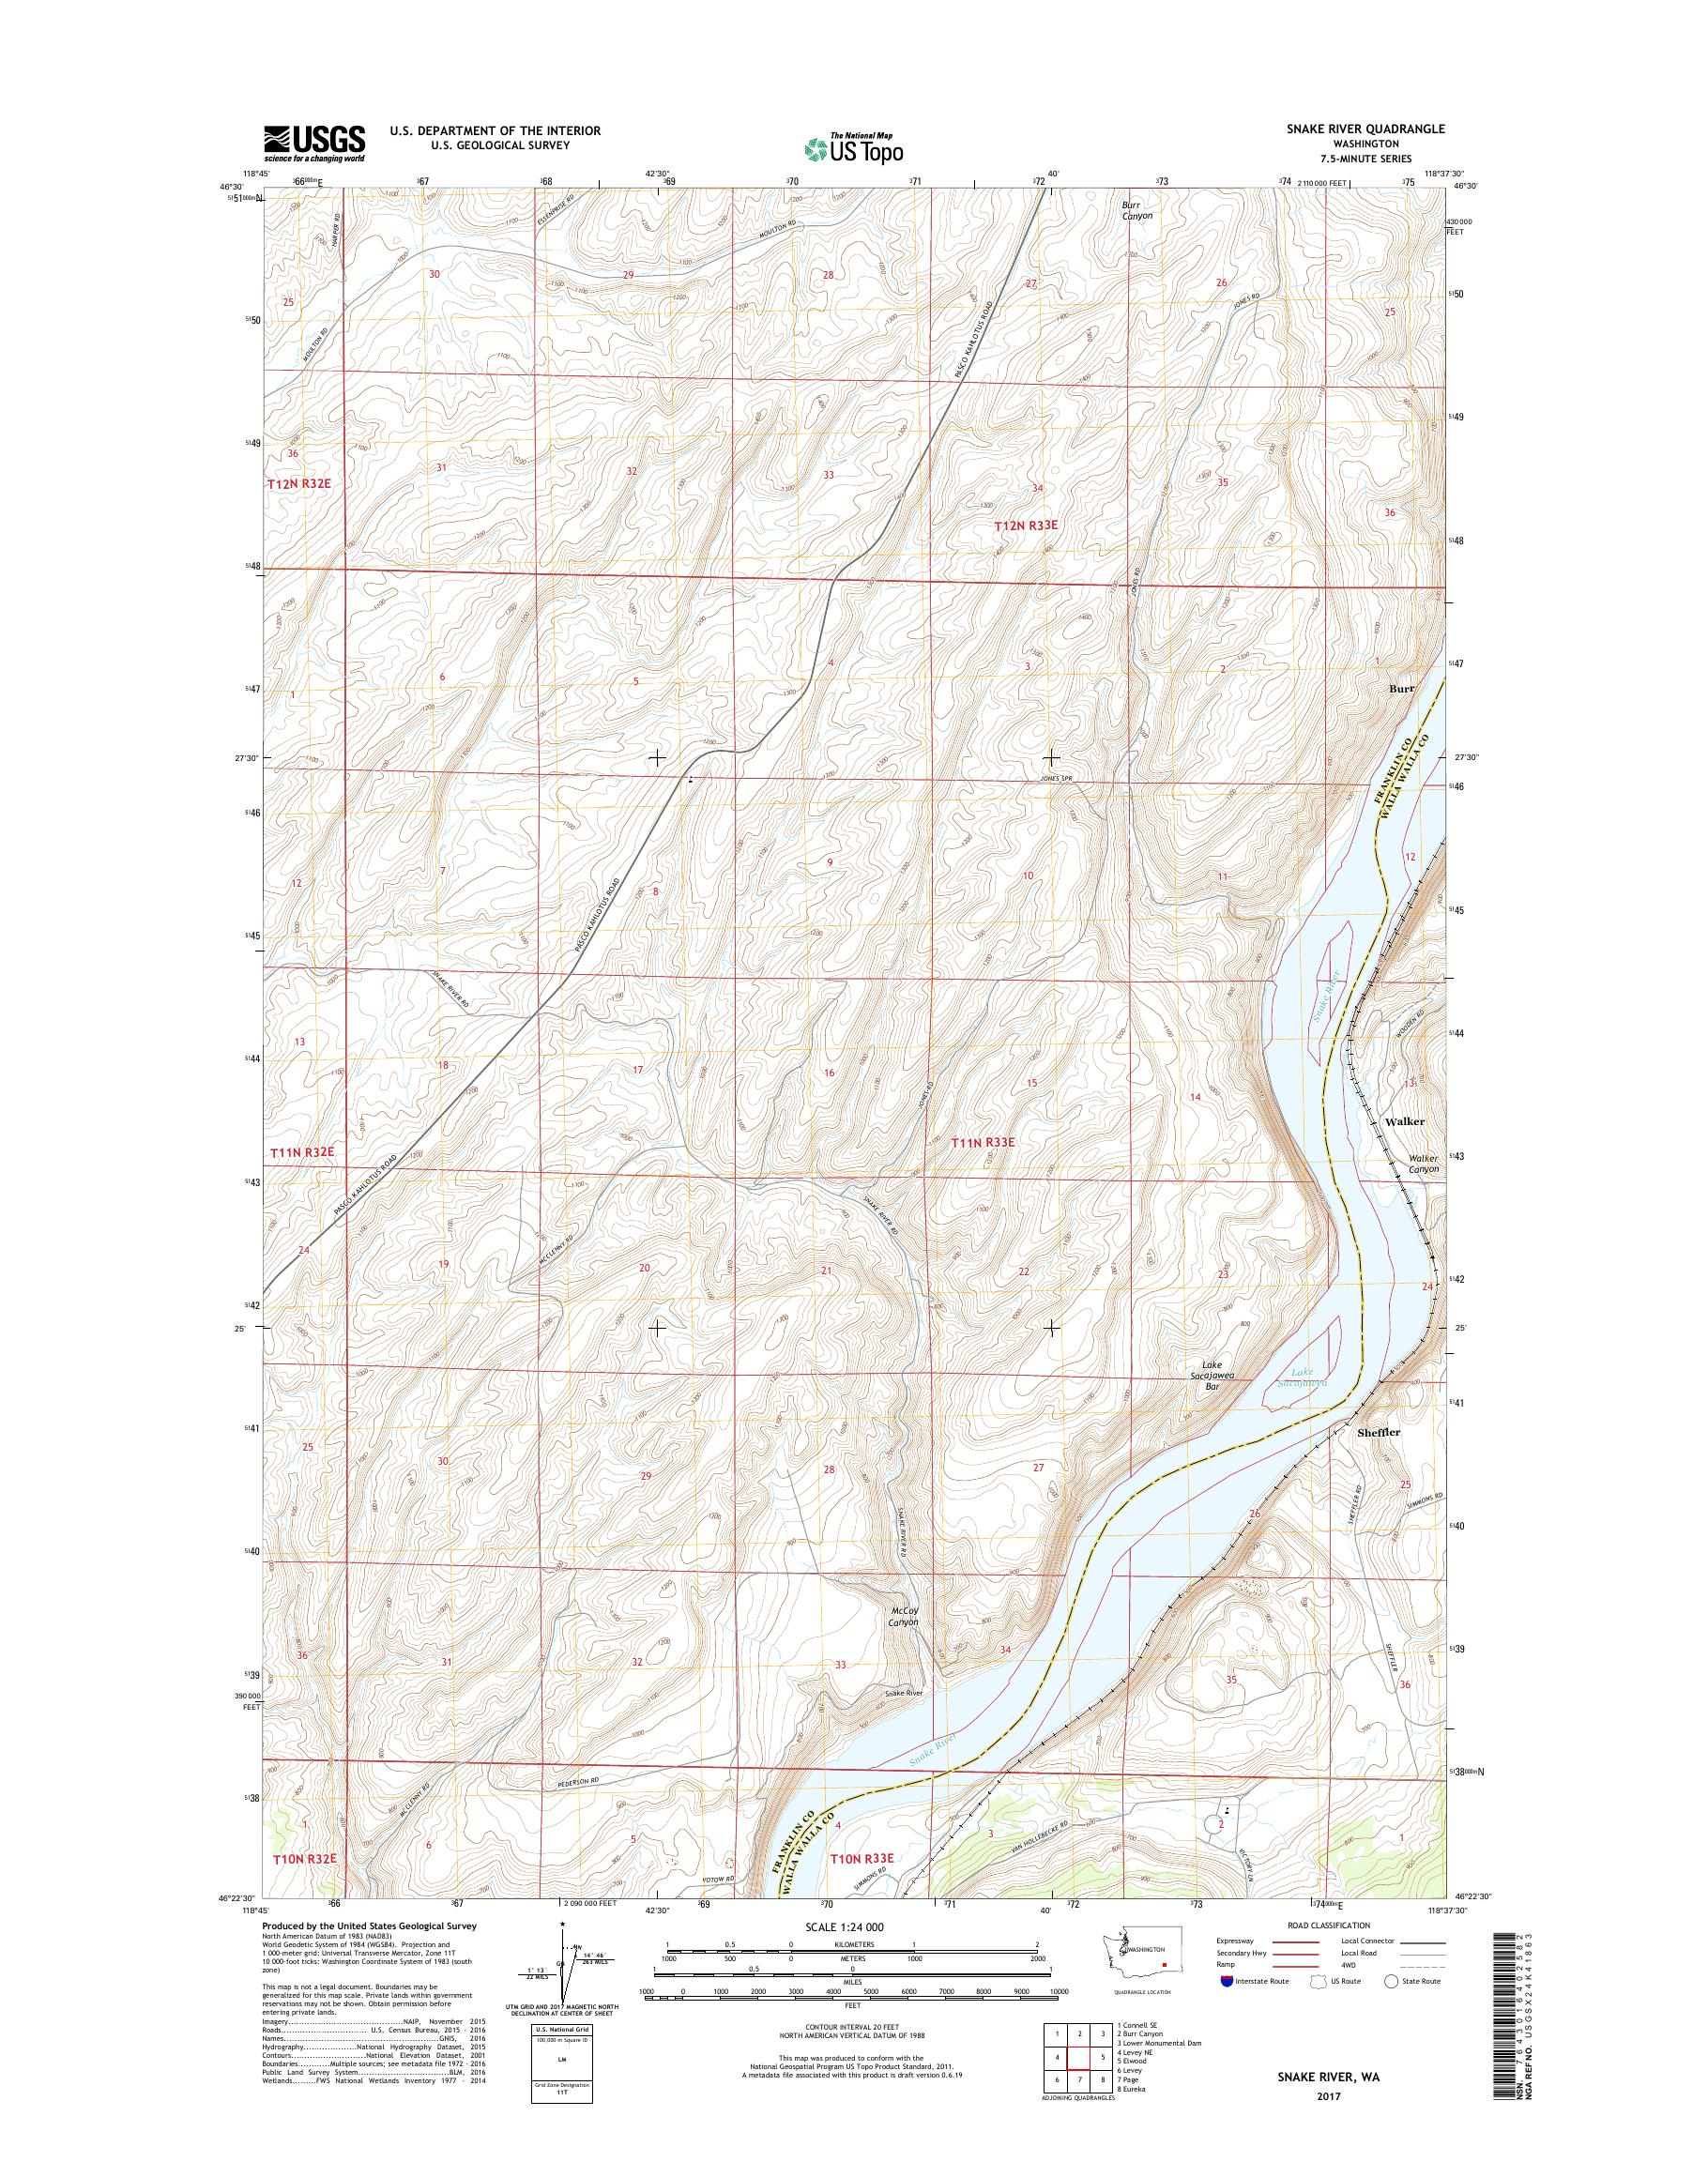 MyTopo Snake River, Washington USGS Quad Topo Map on yakima river washington map, appalachian mountains washington map, skagit river washington map, potholes wa map, washington state volcano map, columbia river washington map, blue mountains washington map, rock creek washington map, missouri river map, washington state rivers map, hells canyon map, hood canal washington map, coldwater lake washington map, okanogan river washington map, columbia plateau map, toutle river washington map, cascade river washington map, spokane river map, washougal river washington map, olympic range washington map,